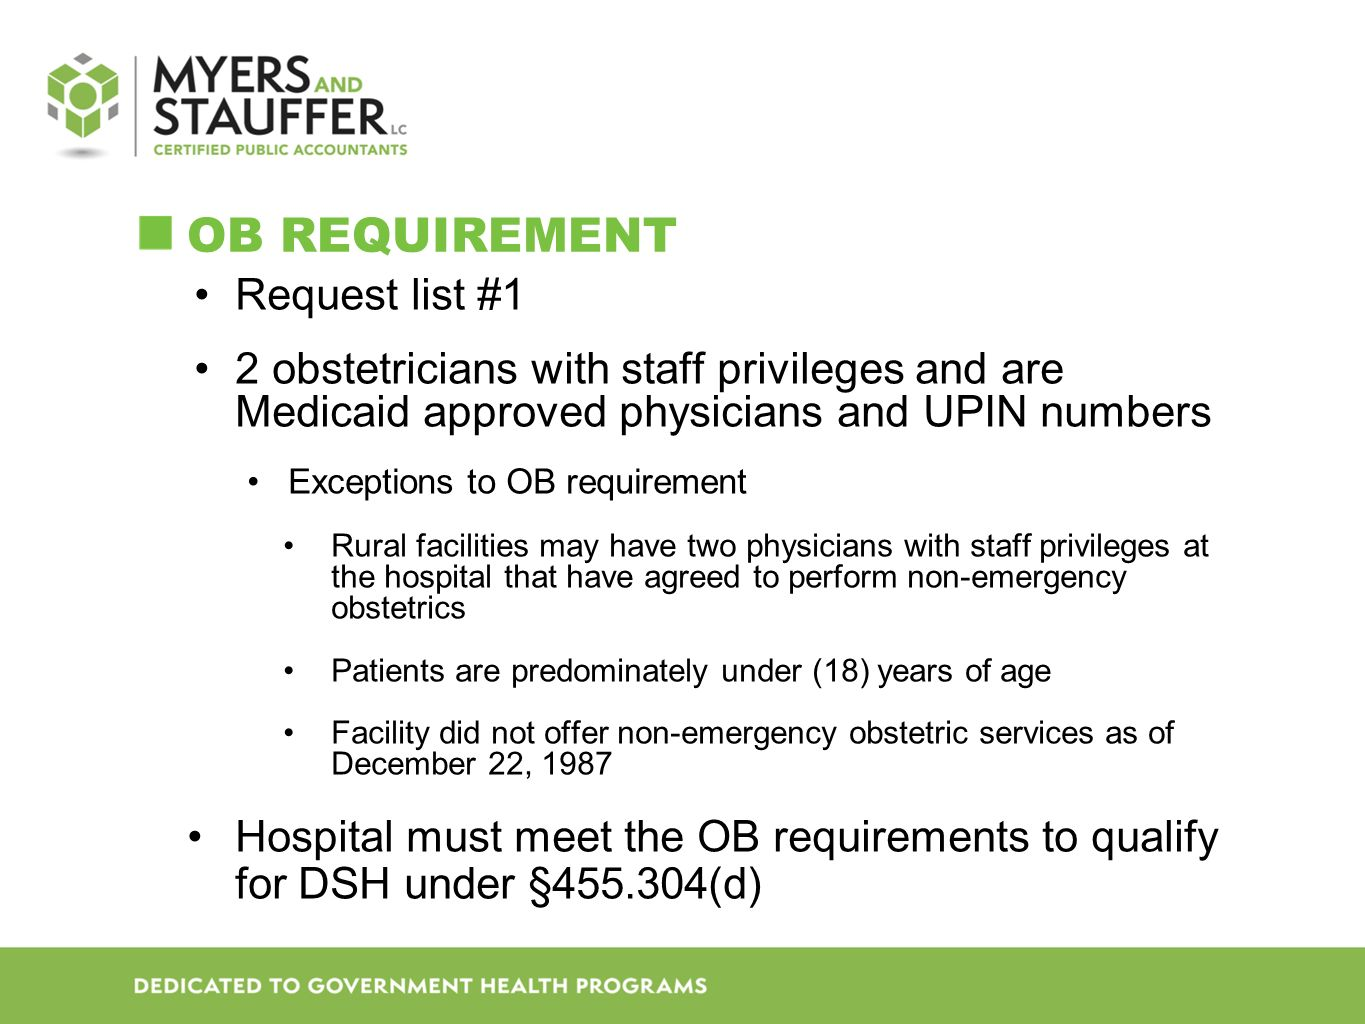 OB REQUIREMENT Request list #1 2 obstetricians with staff privileges and are Medicaid approved physicians and UPIN numbers Exceptions to OB requirement Rural facilities may have two physicians with staff privileges at the hospital that have agreed to perform non-emergency obstetrics Patients are predominately under (18) years of age Facility did not offer non-emergency obstetric services as of December 22, 1987 Hospital must meet the OB requirements to qualify for DSH under §455.304(d)